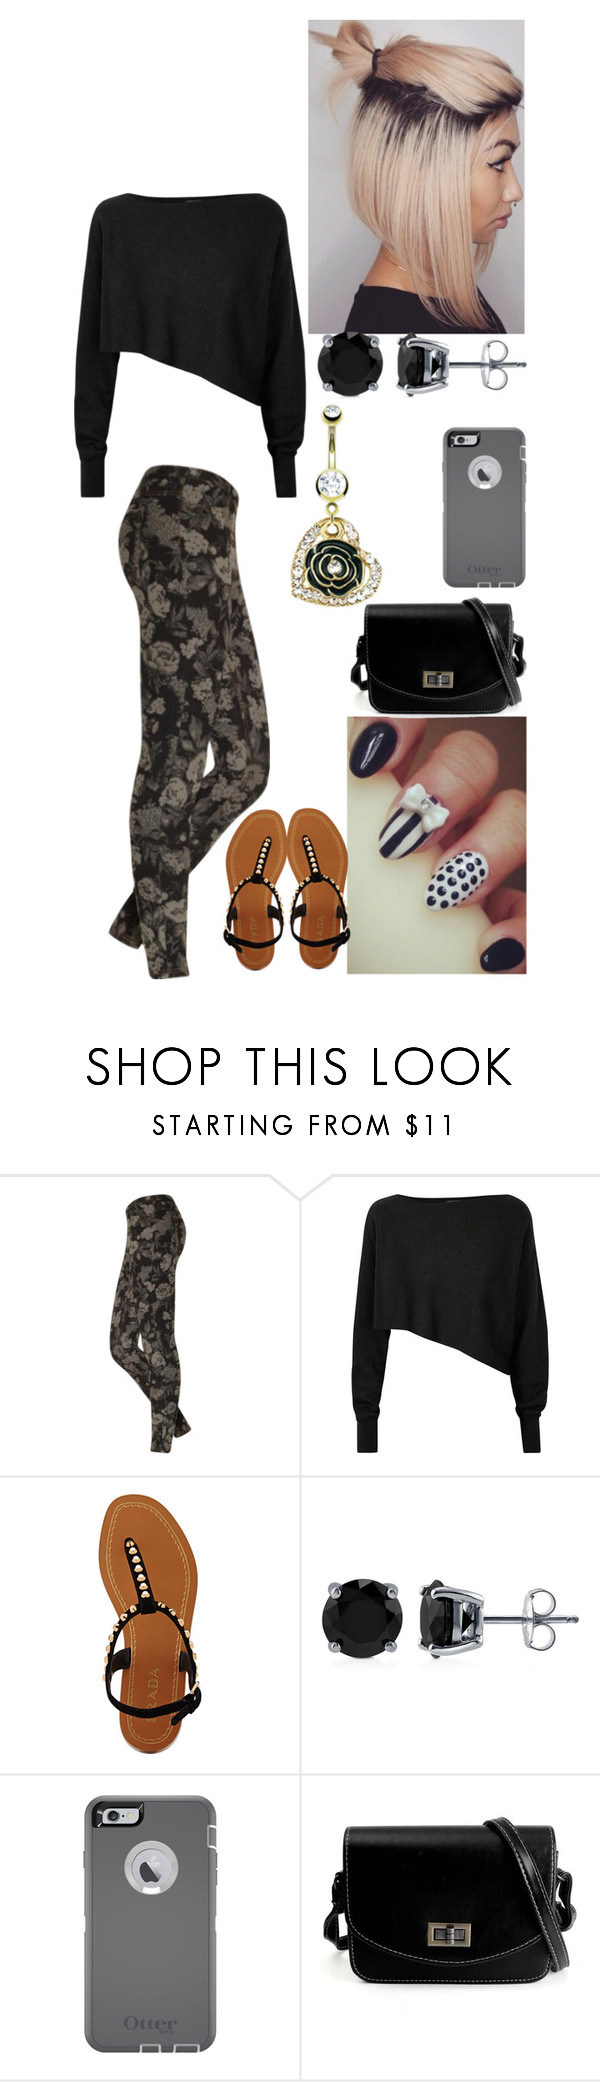 """""""Untitled #2329"""" by alize-roshaun-sims ❤ liked on Polyvore featuring Hue, Crea Concept, Prada, BERRICLE and OtterBox"""